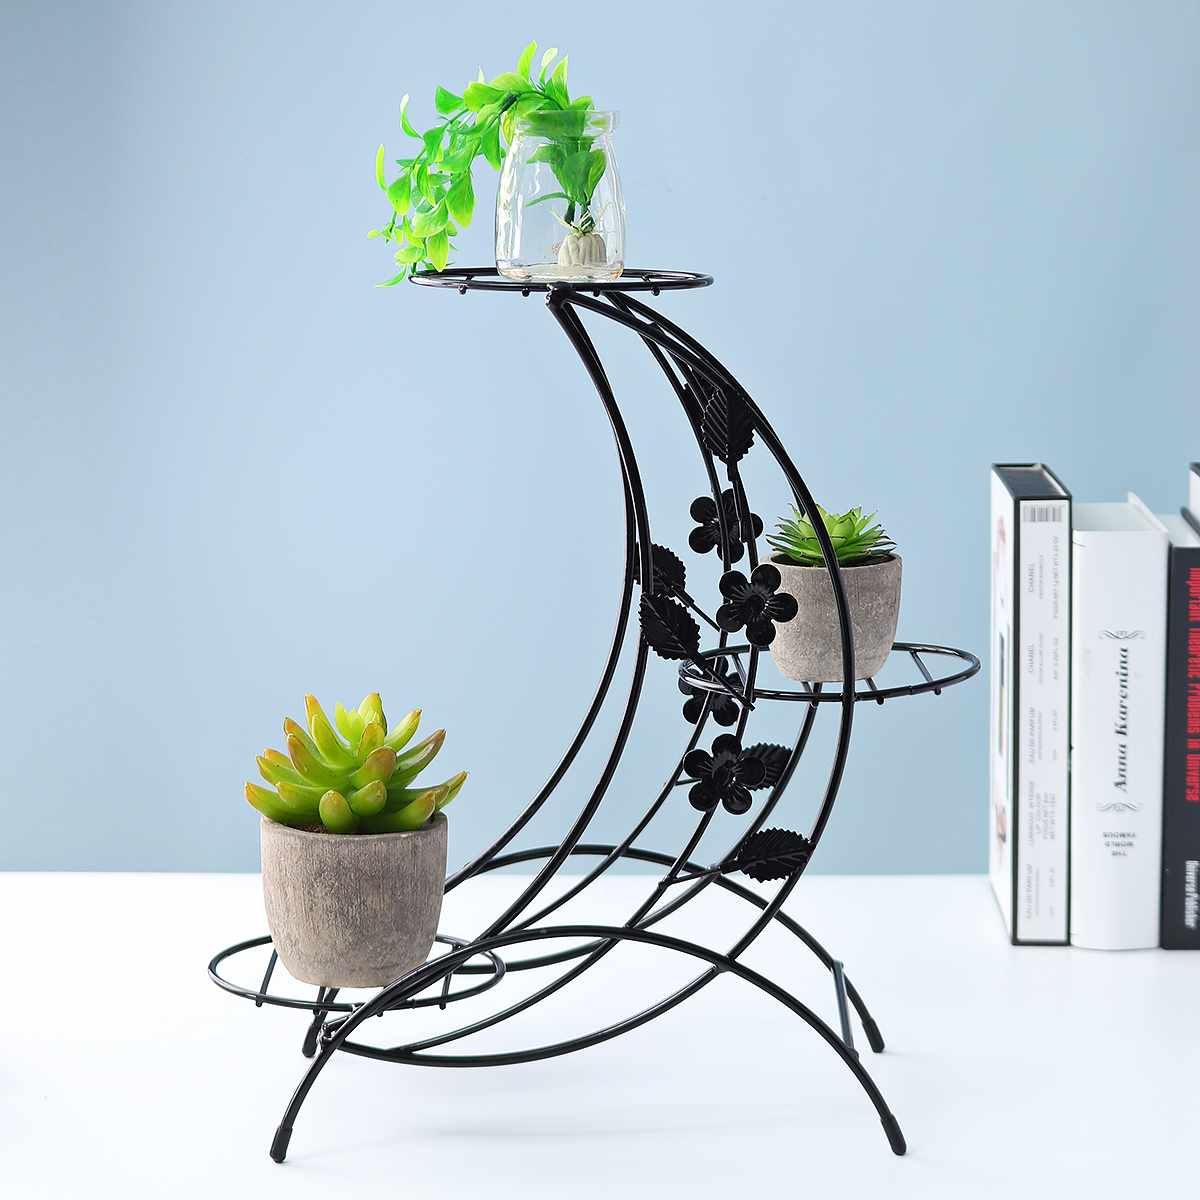 Household Iron Plant Stand Succulent Shelf Rack Multi-layer Garden Balcony Desktop Decor Indoor Coffee Flower Pot Shelf